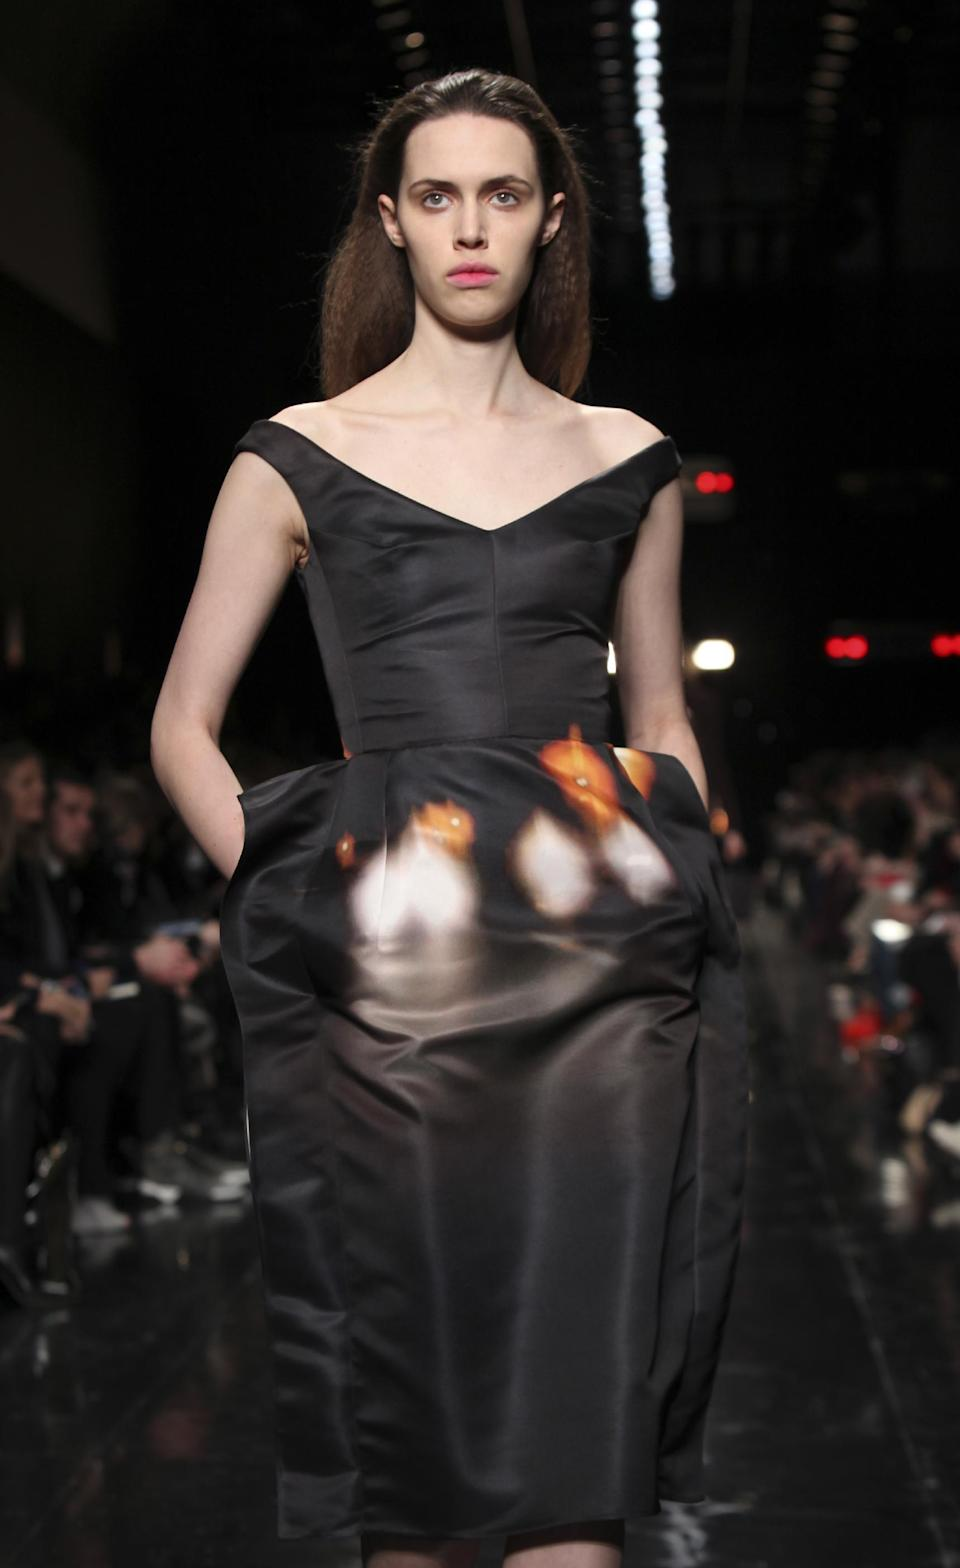 A model presents a creation by French fashion designer Guillaume Henry for Carven Ready to Wear's Fall-Winter 2013-2014 fashion collection, presented, Thursday, Feb.28, 2013 in Paris. (AP Photo/Thibault Camus)